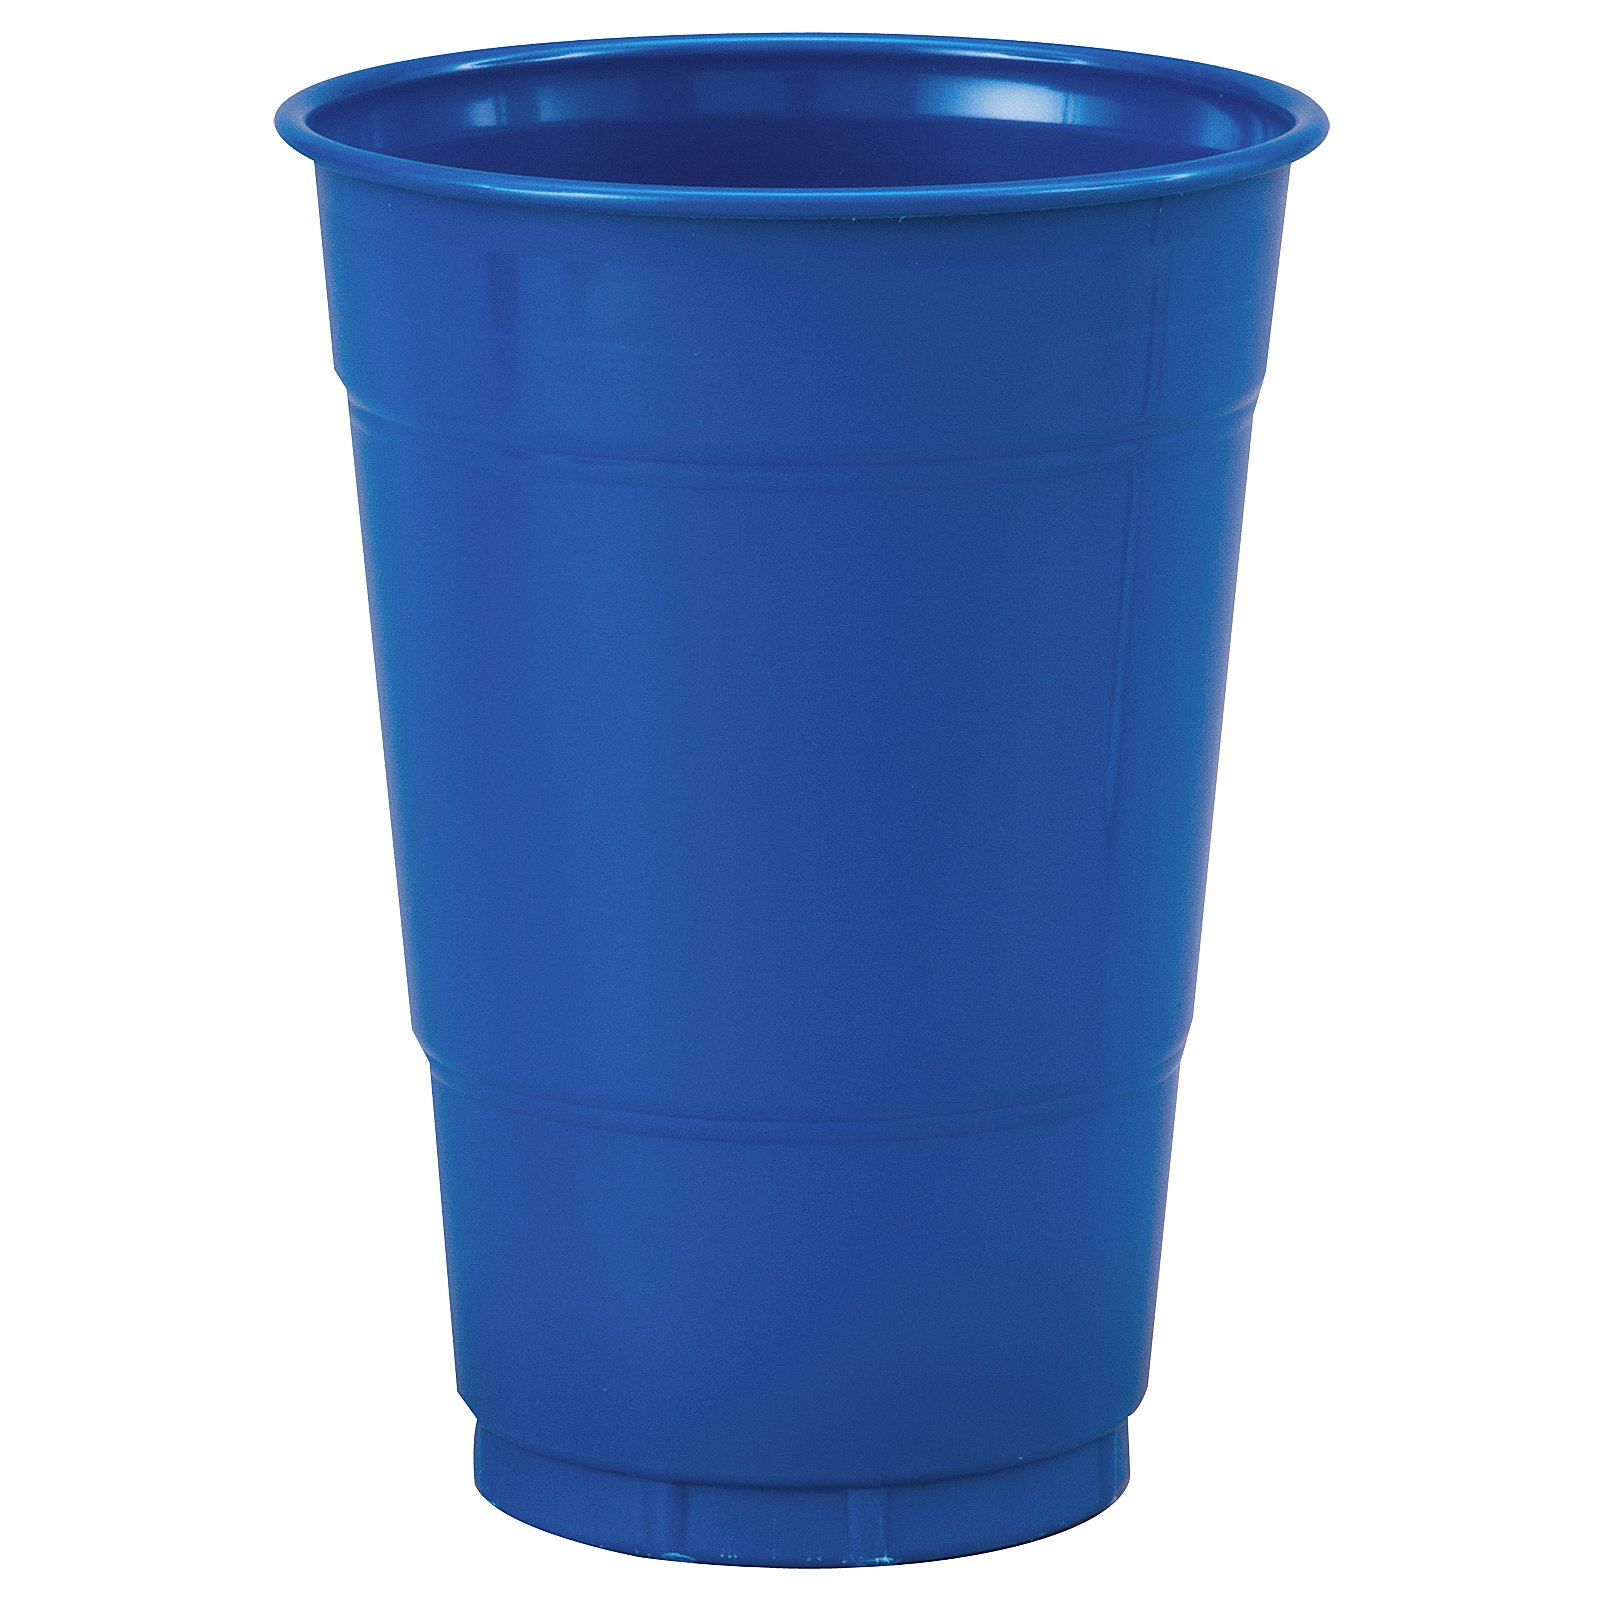 True Blue (Blue) 16 oz. Plastic Cups (20 count)